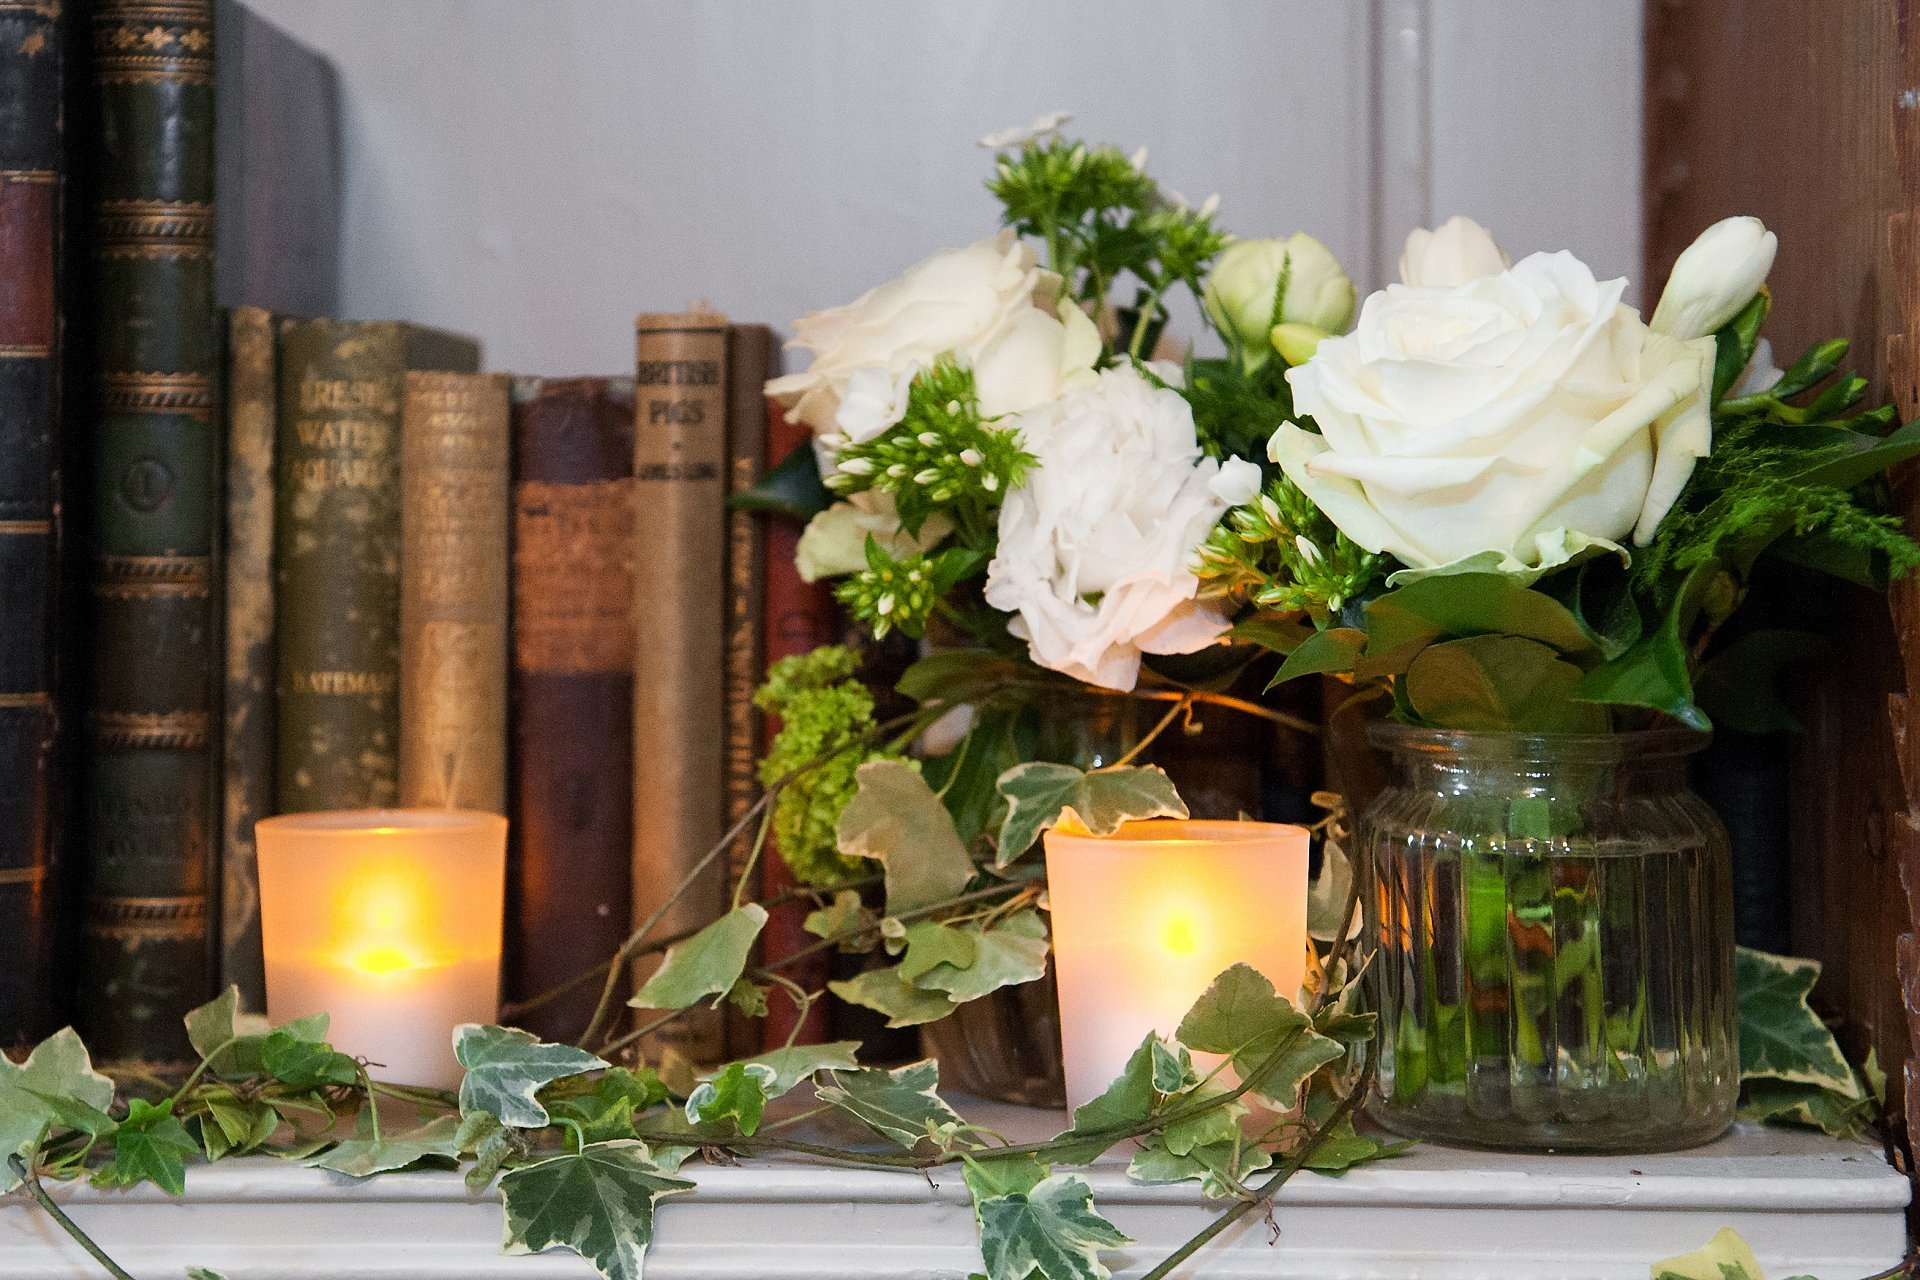 The bookcase in the Bishop Terrick's Drawing Room is an ideal space to fit floral arrangements, in this case pretty creams, whites and greens including trailing ivy in mis-matches glass vases and jam jars along with electric tealights